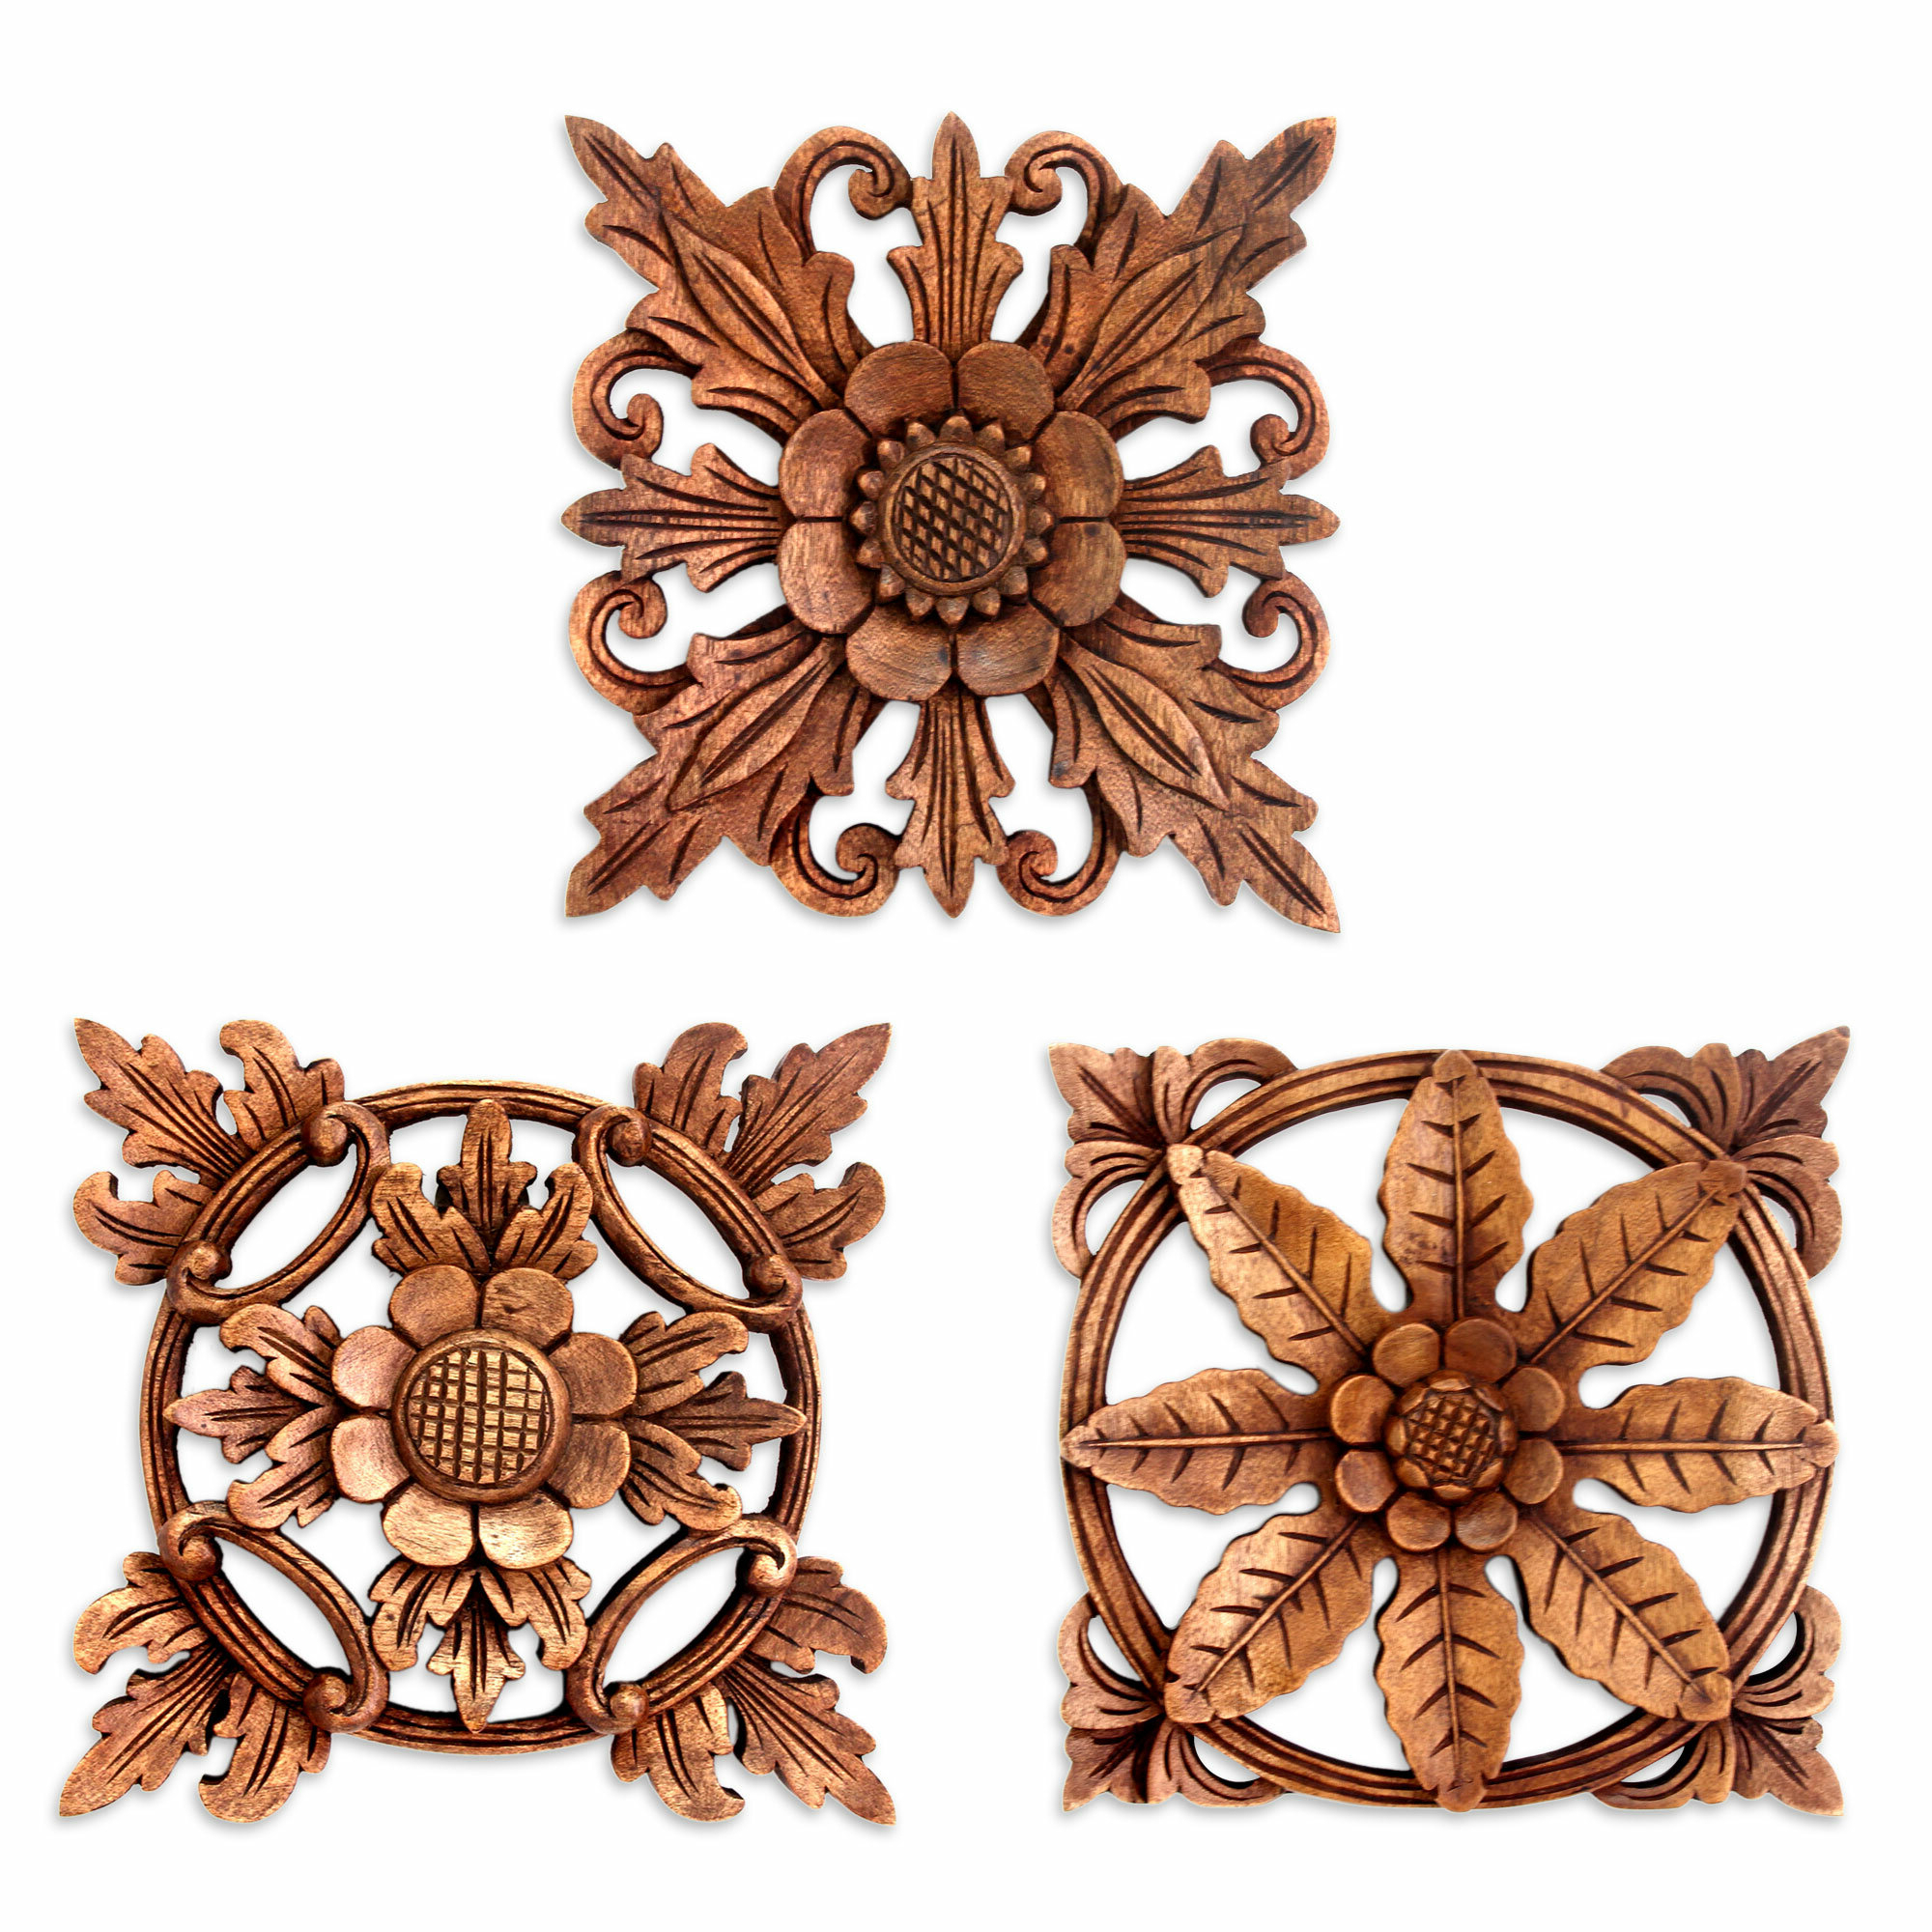 3 Piece Hand Carved Wood Floral Relief Panels Wall Décor Set Intended For Well Known 3 Piece Carved Ornate Wall Décor Set (View 12 of 20)